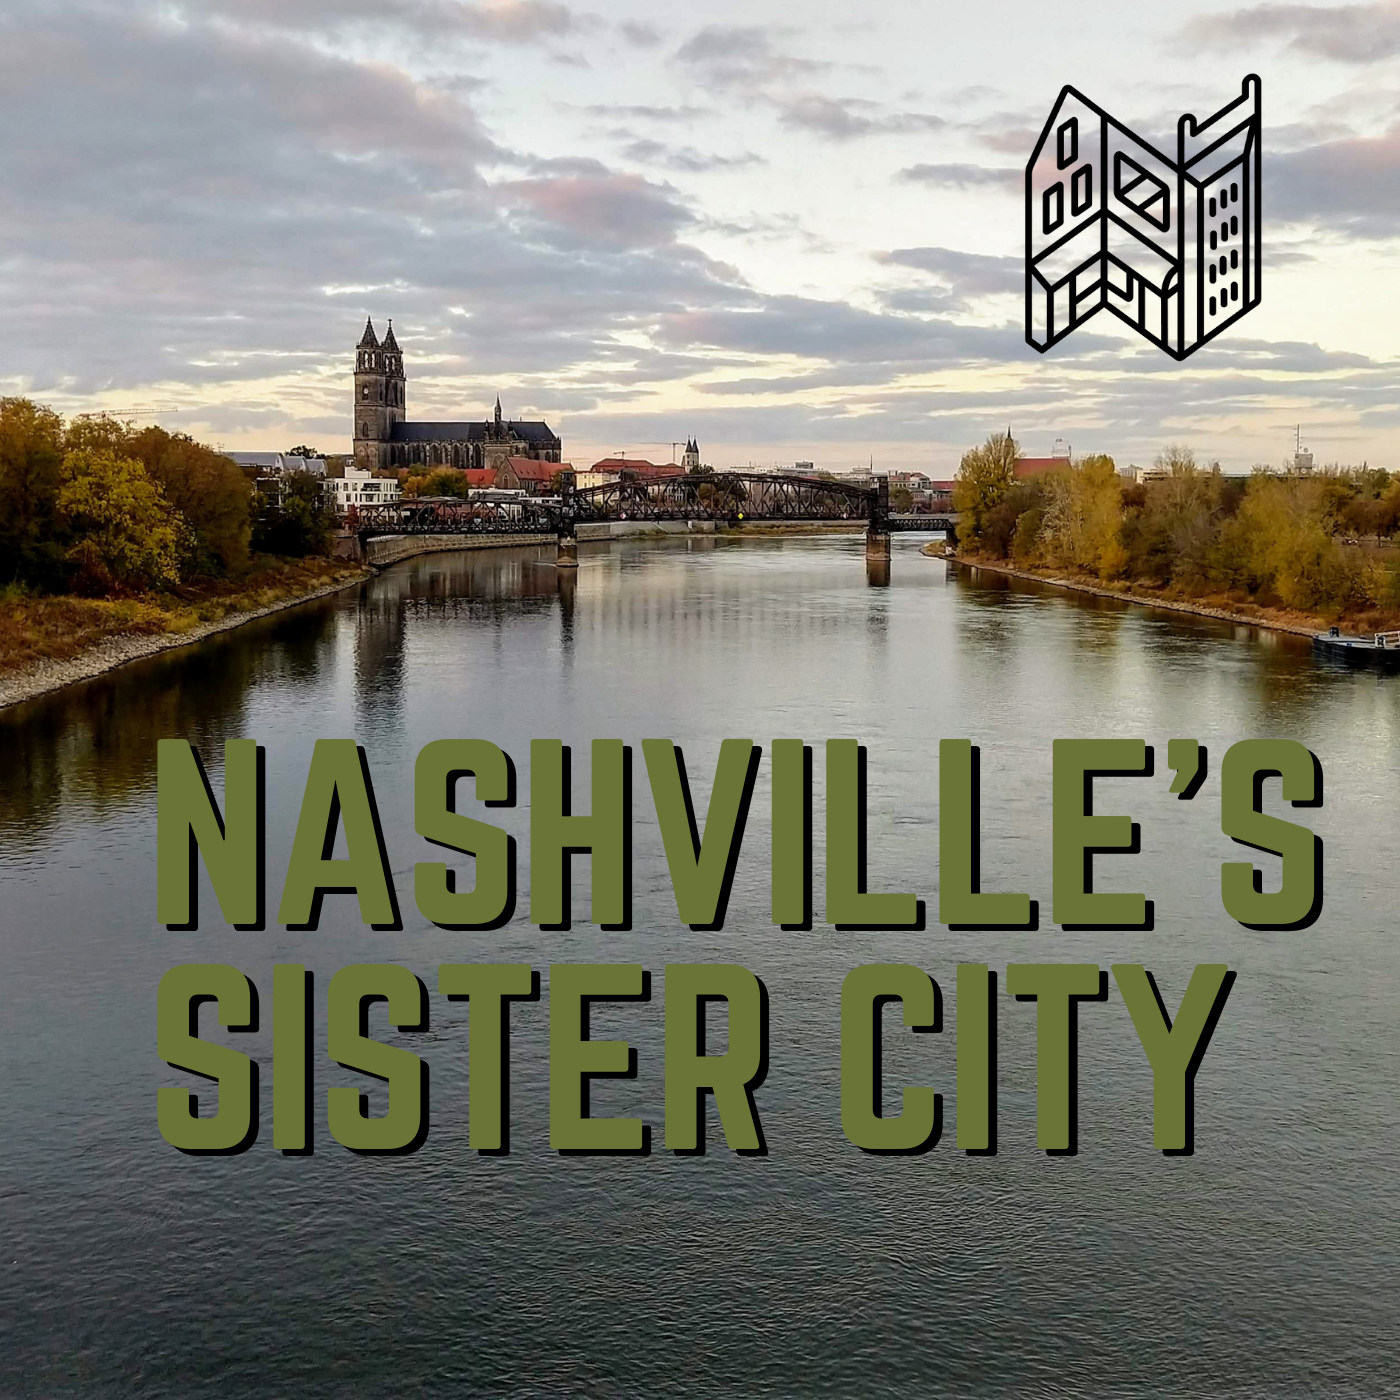 Nashville's Sister City